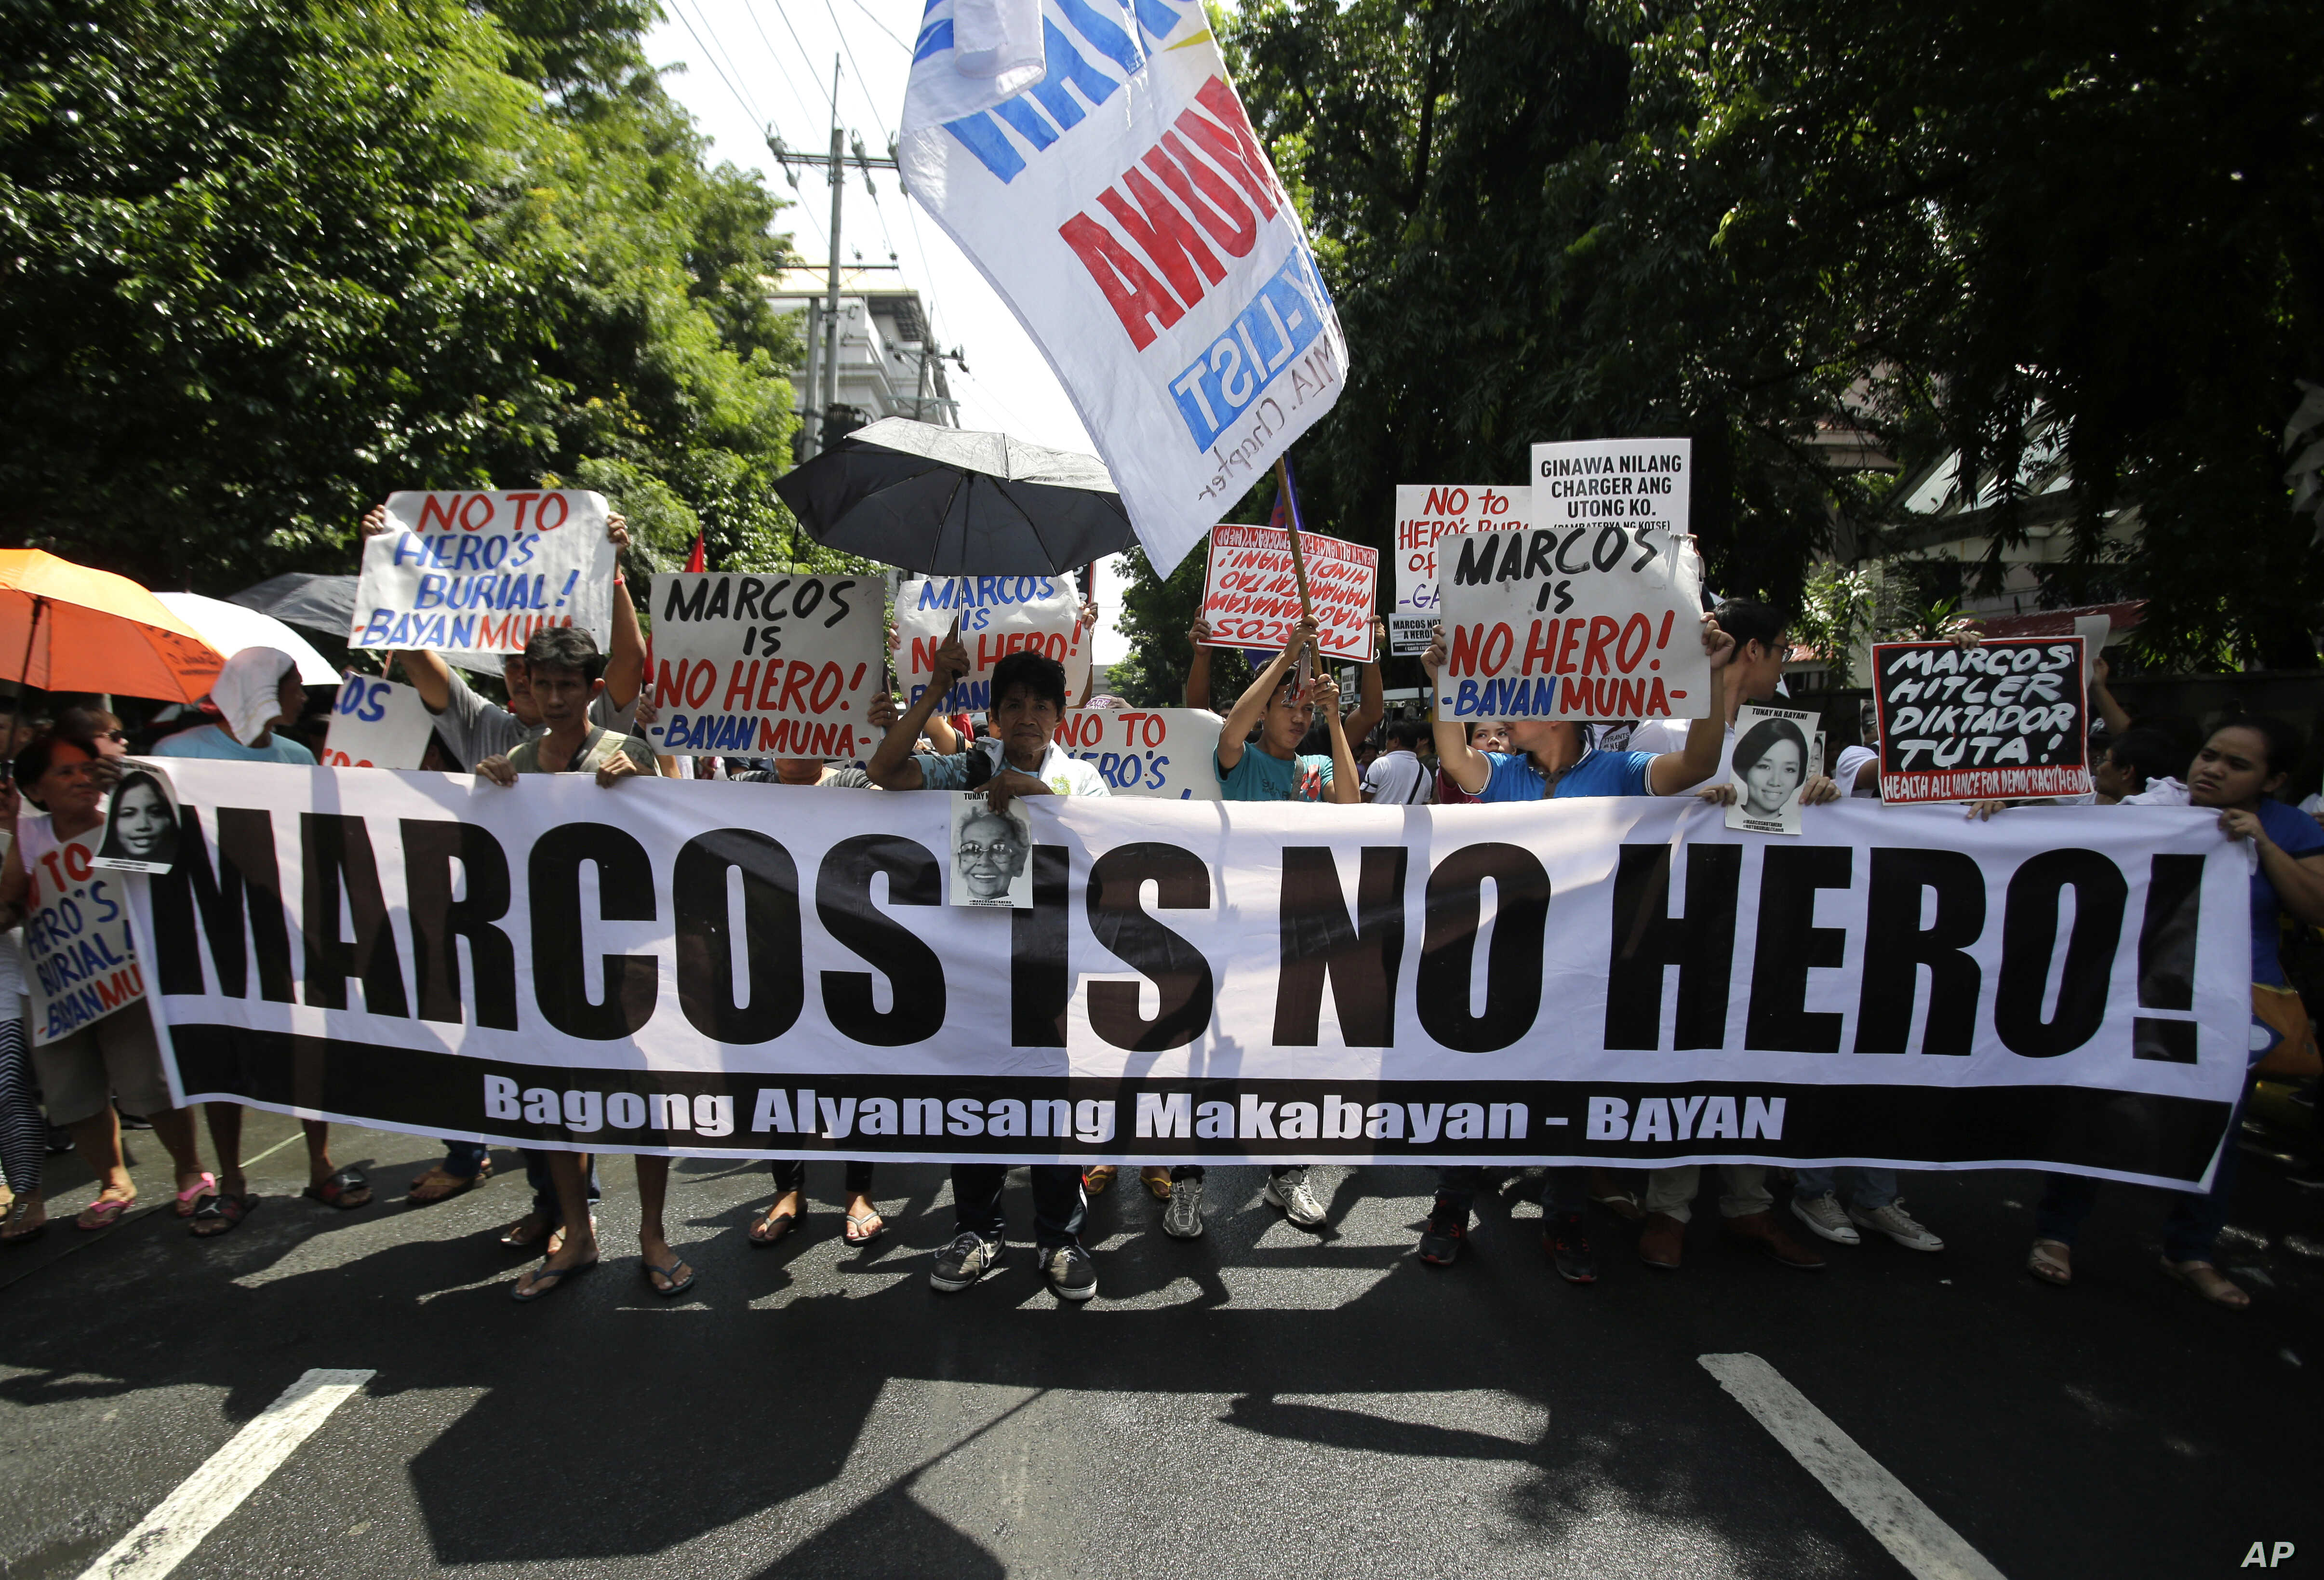 Philippines Marcos Burial: Anti-Marcos protesters holds slogans in a rally outside the Philippine Supreme Court in Manila, Philippines to coincide with the oral arguments following petitions filed by various civil society groups opposing the hero's b